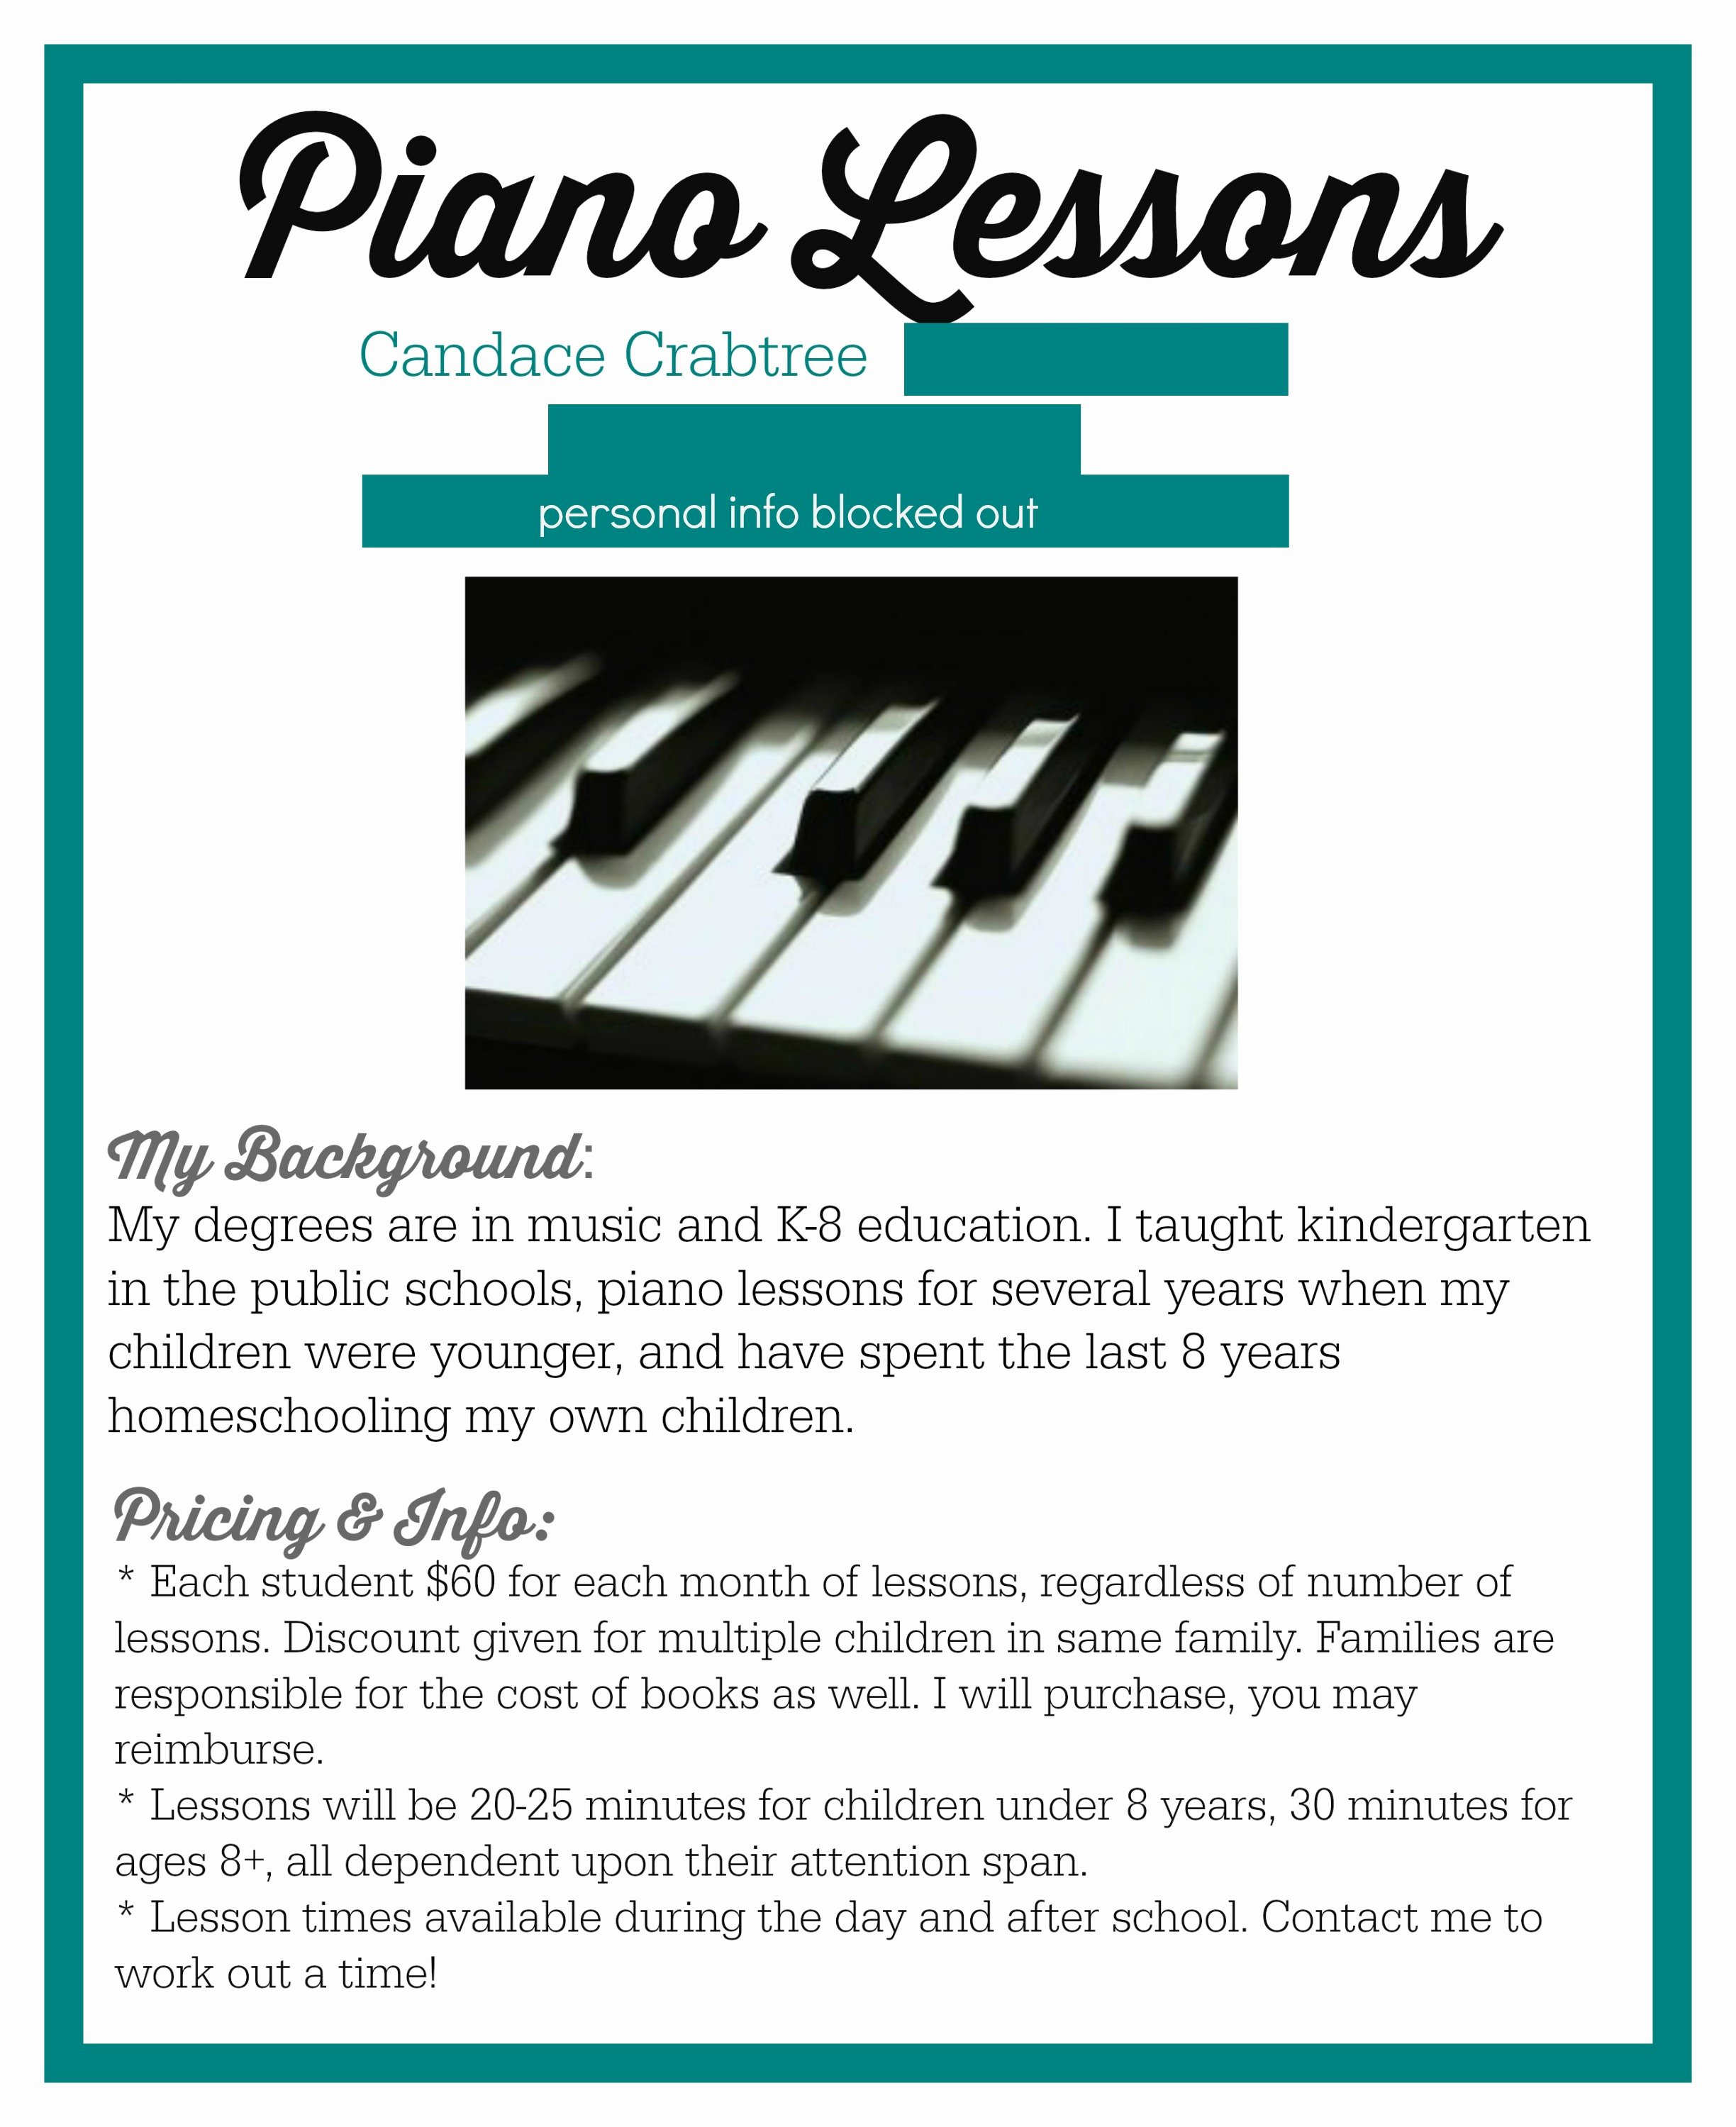 Music Lesson Flyer Template Unique Listening and Waiting for God's Voice